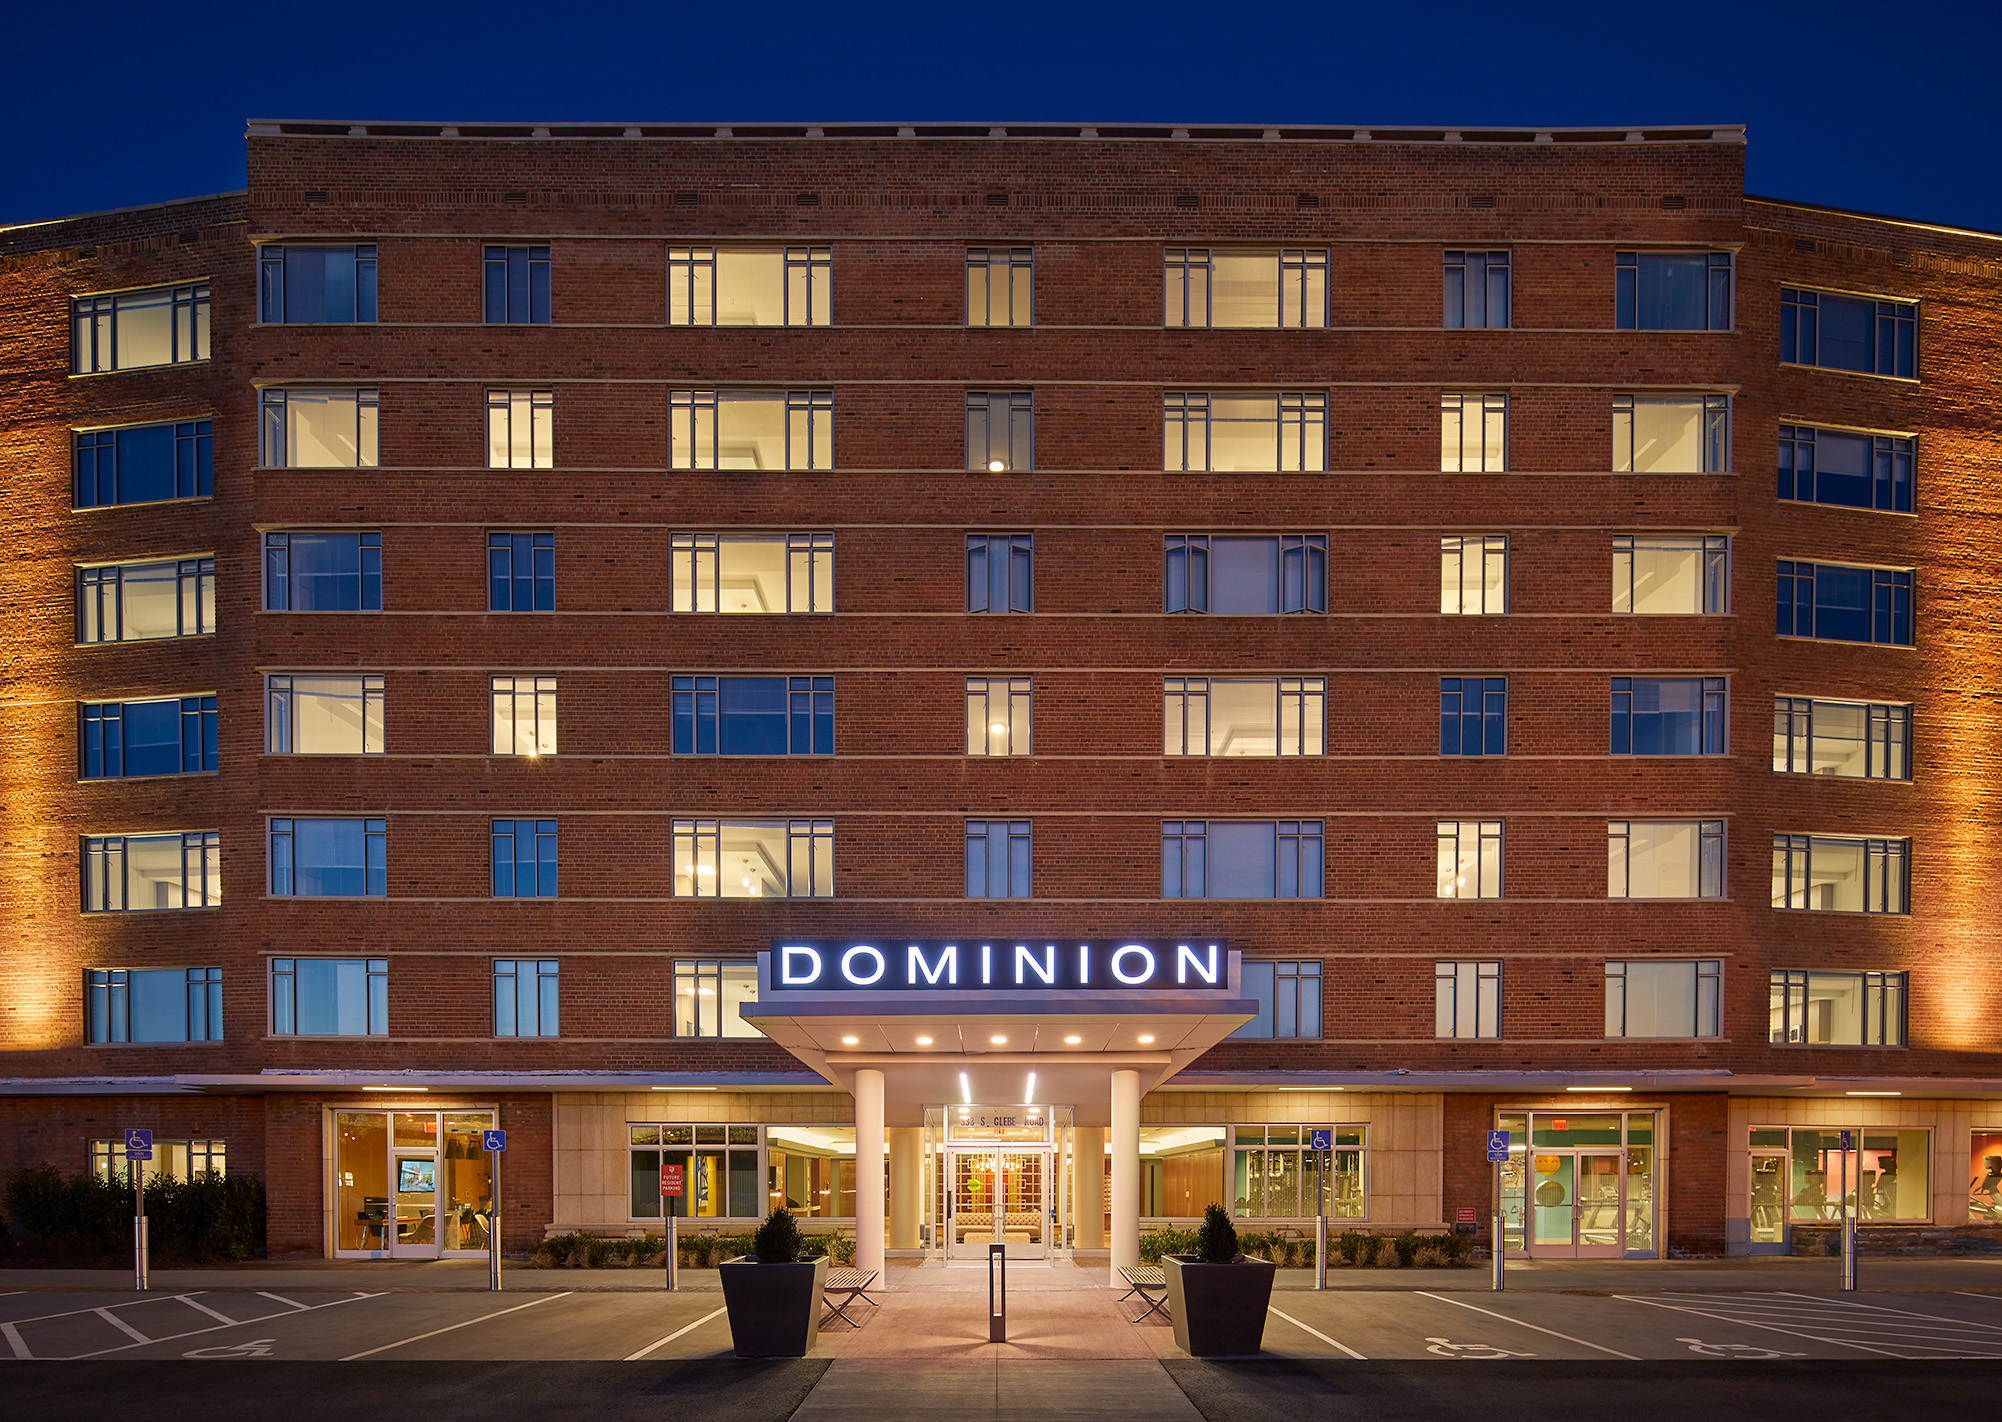 DOMINION - Arlington, VA